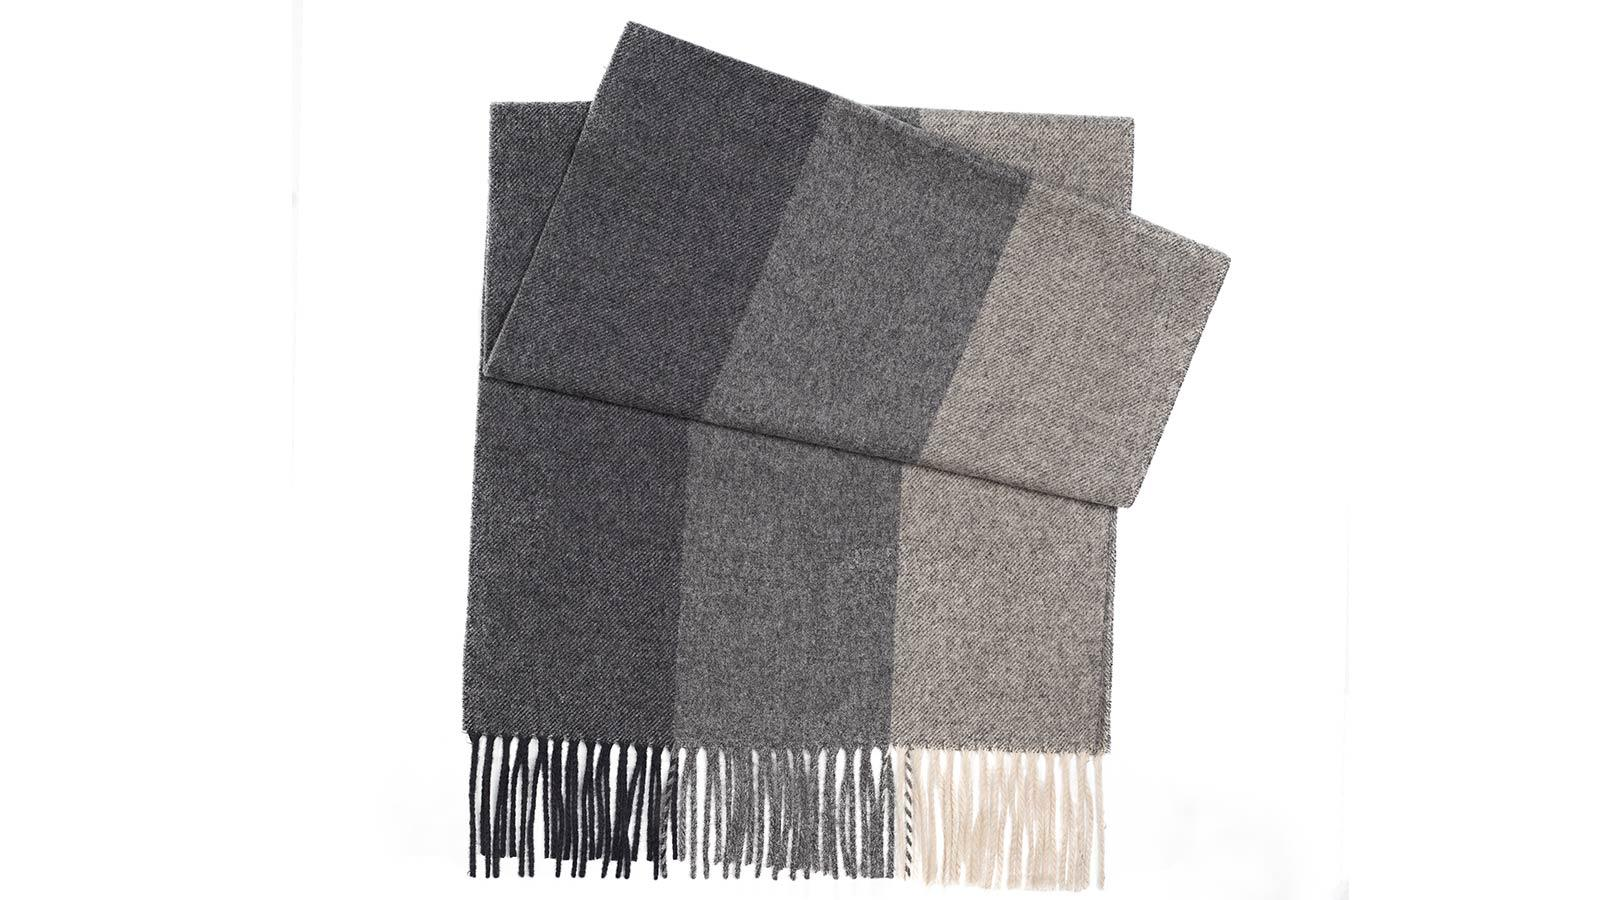 Charcoal & Grey Striped Wool Scarf - slider image 1